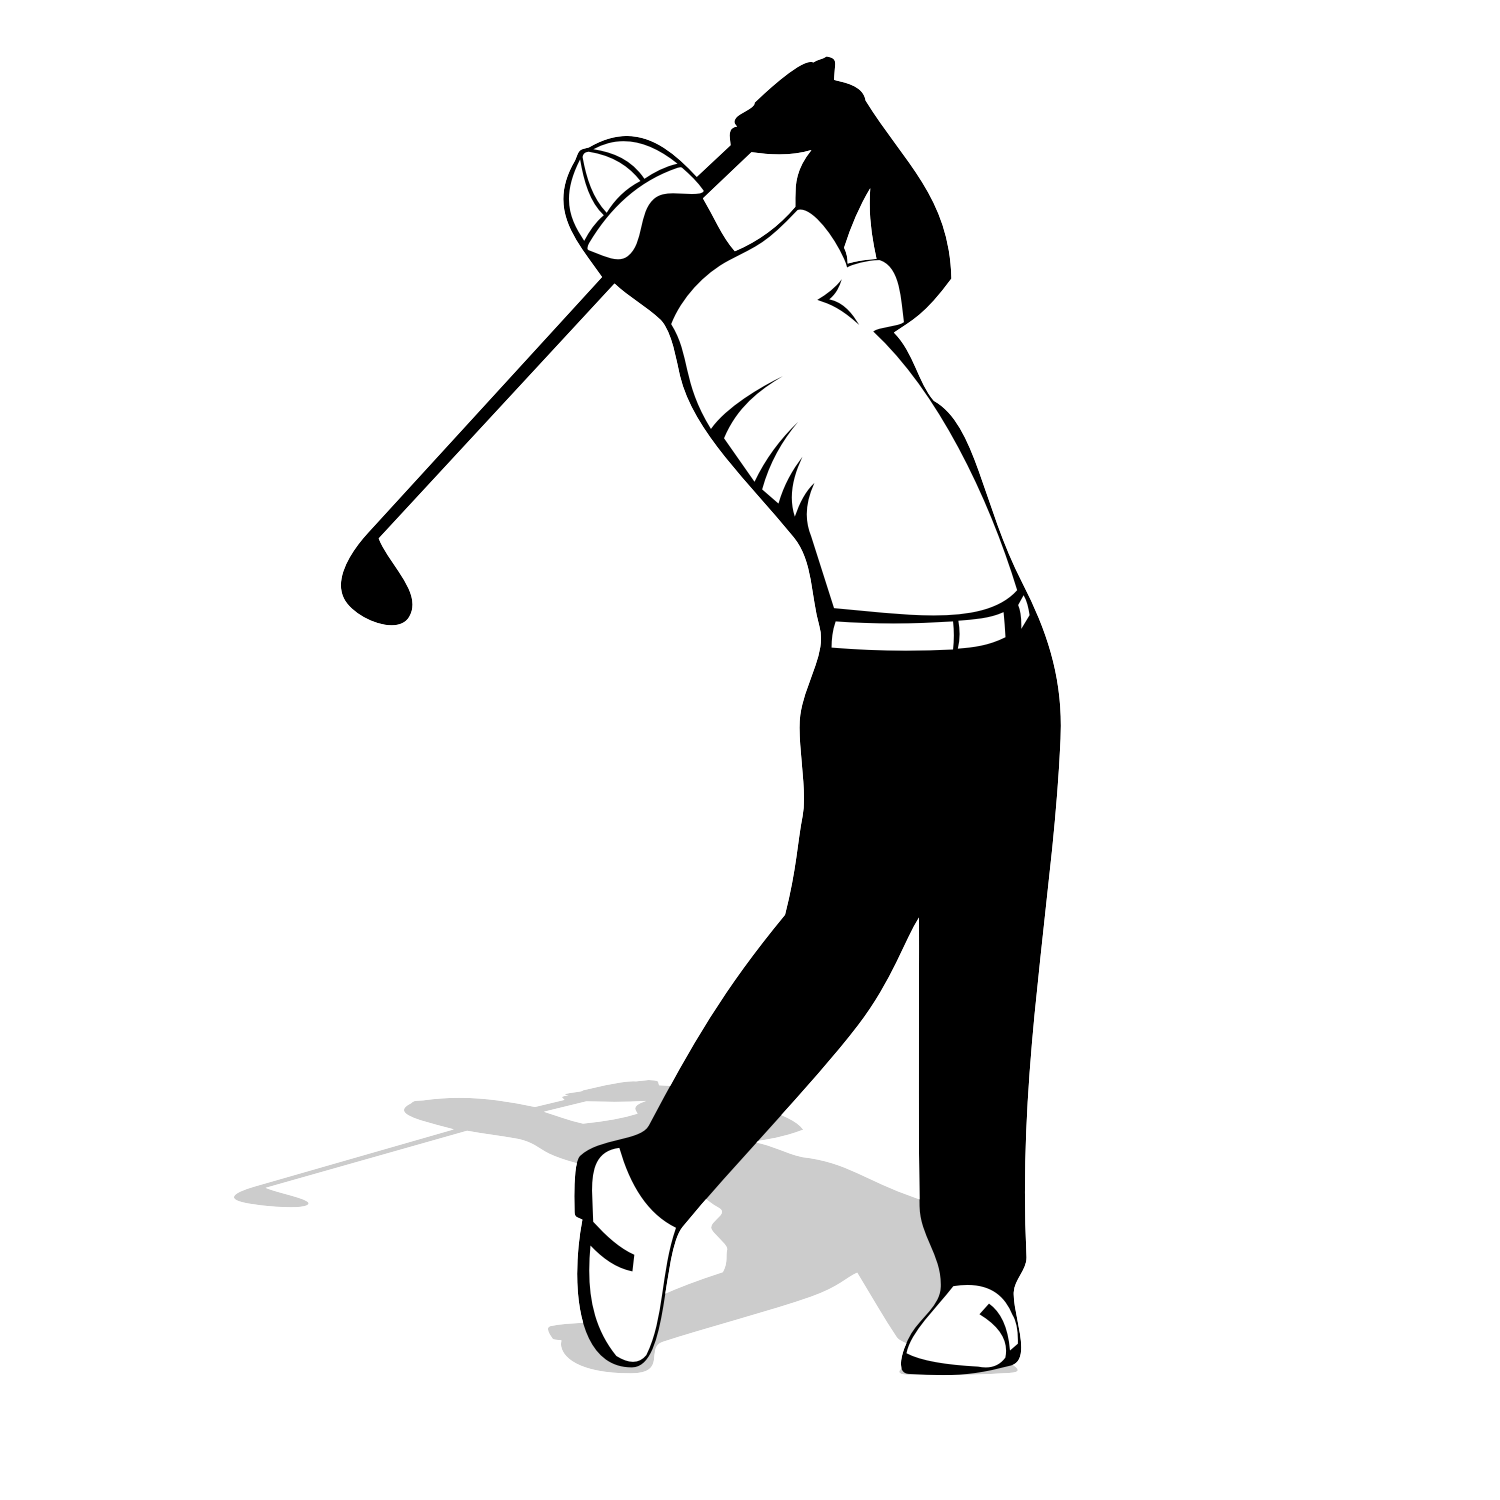 1500x1500 Interesting Golfer Silhouette Vector Free For Use Golf Player